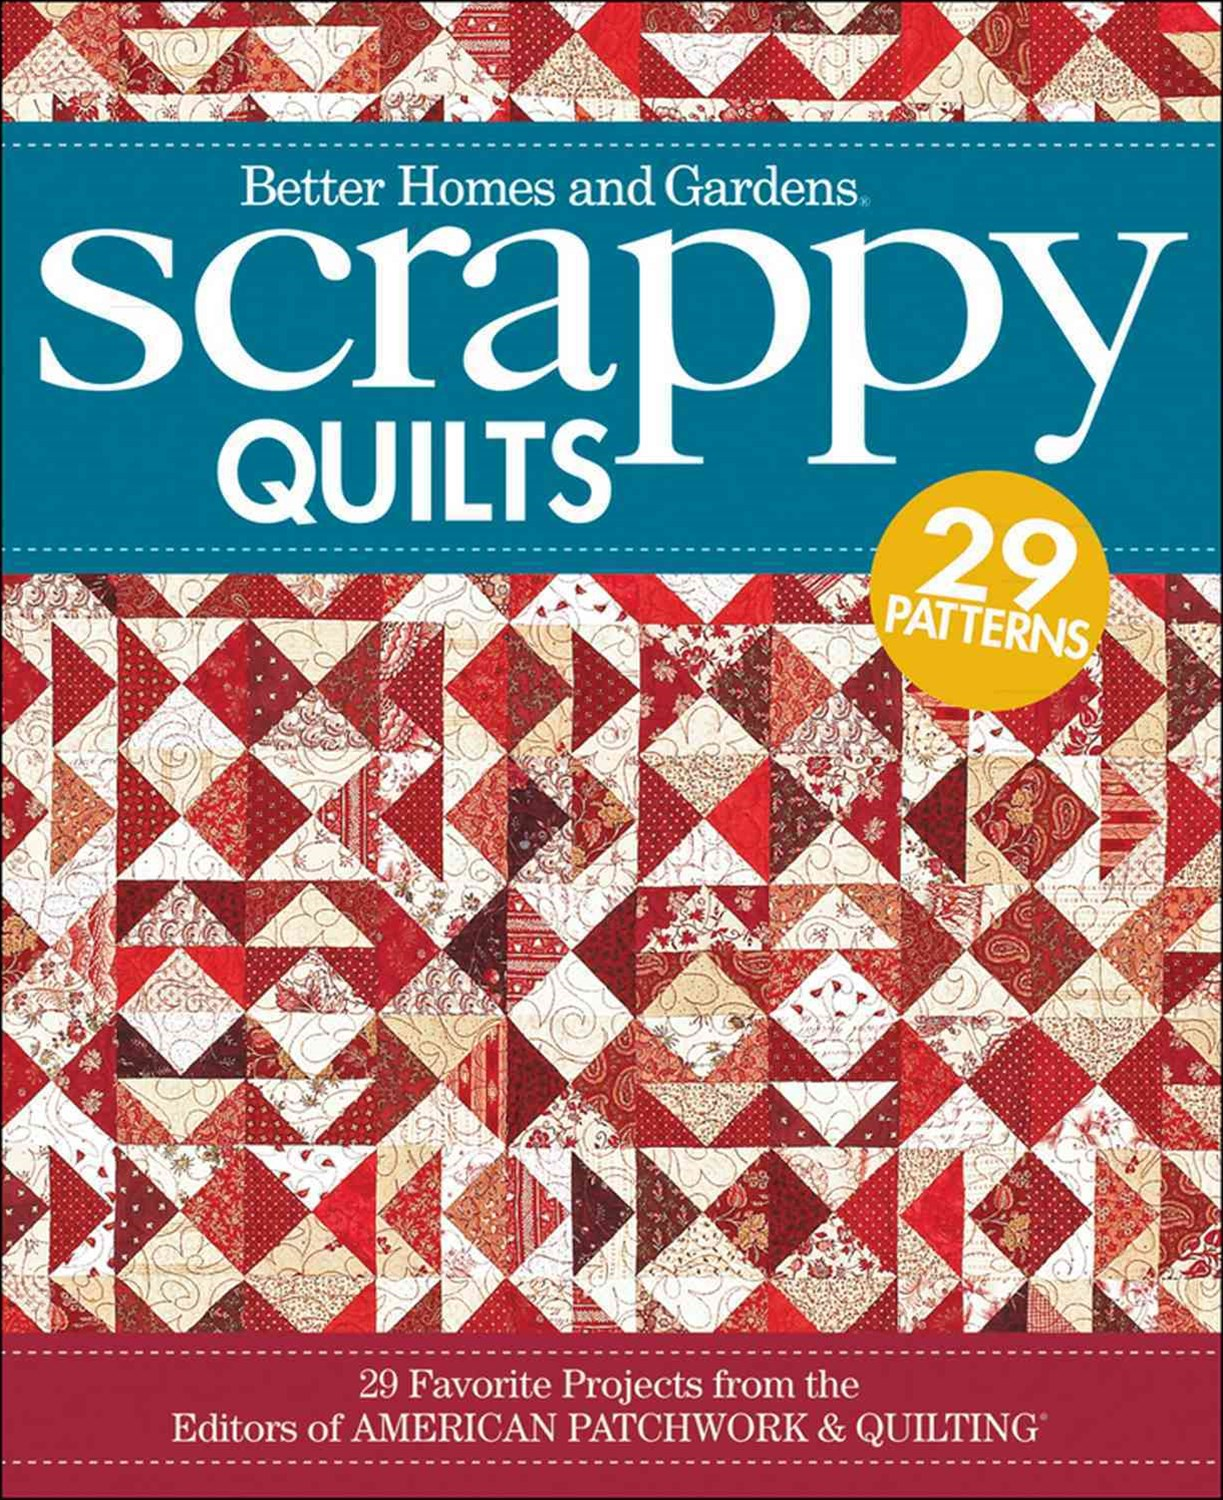 Scrappy Quilts: Better Homes and Gardens